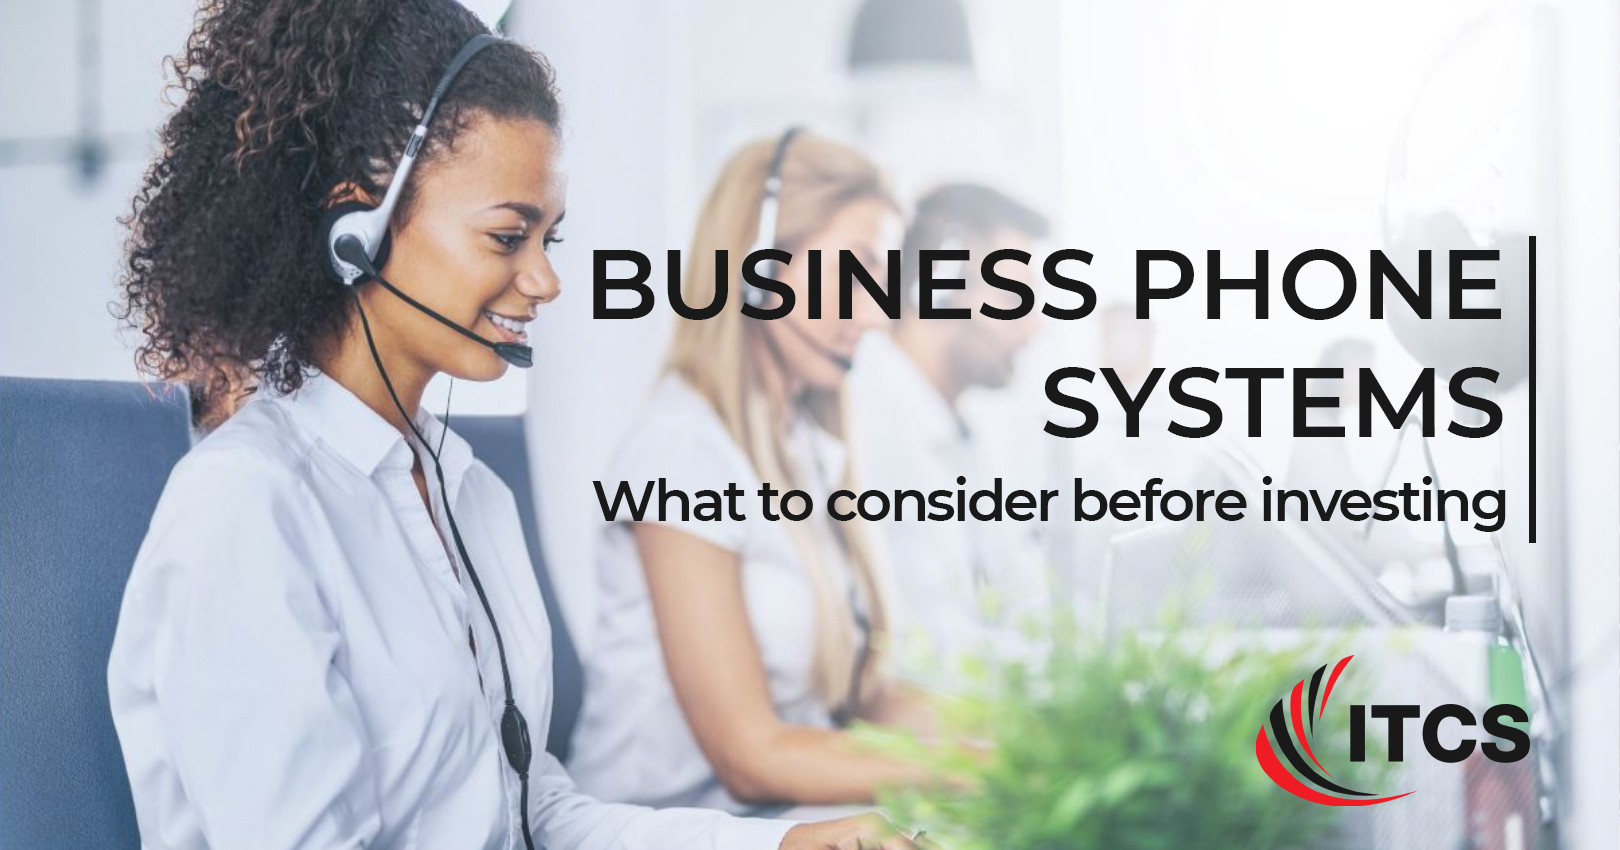 What to contemplate before choosing a business phone system at ITCS